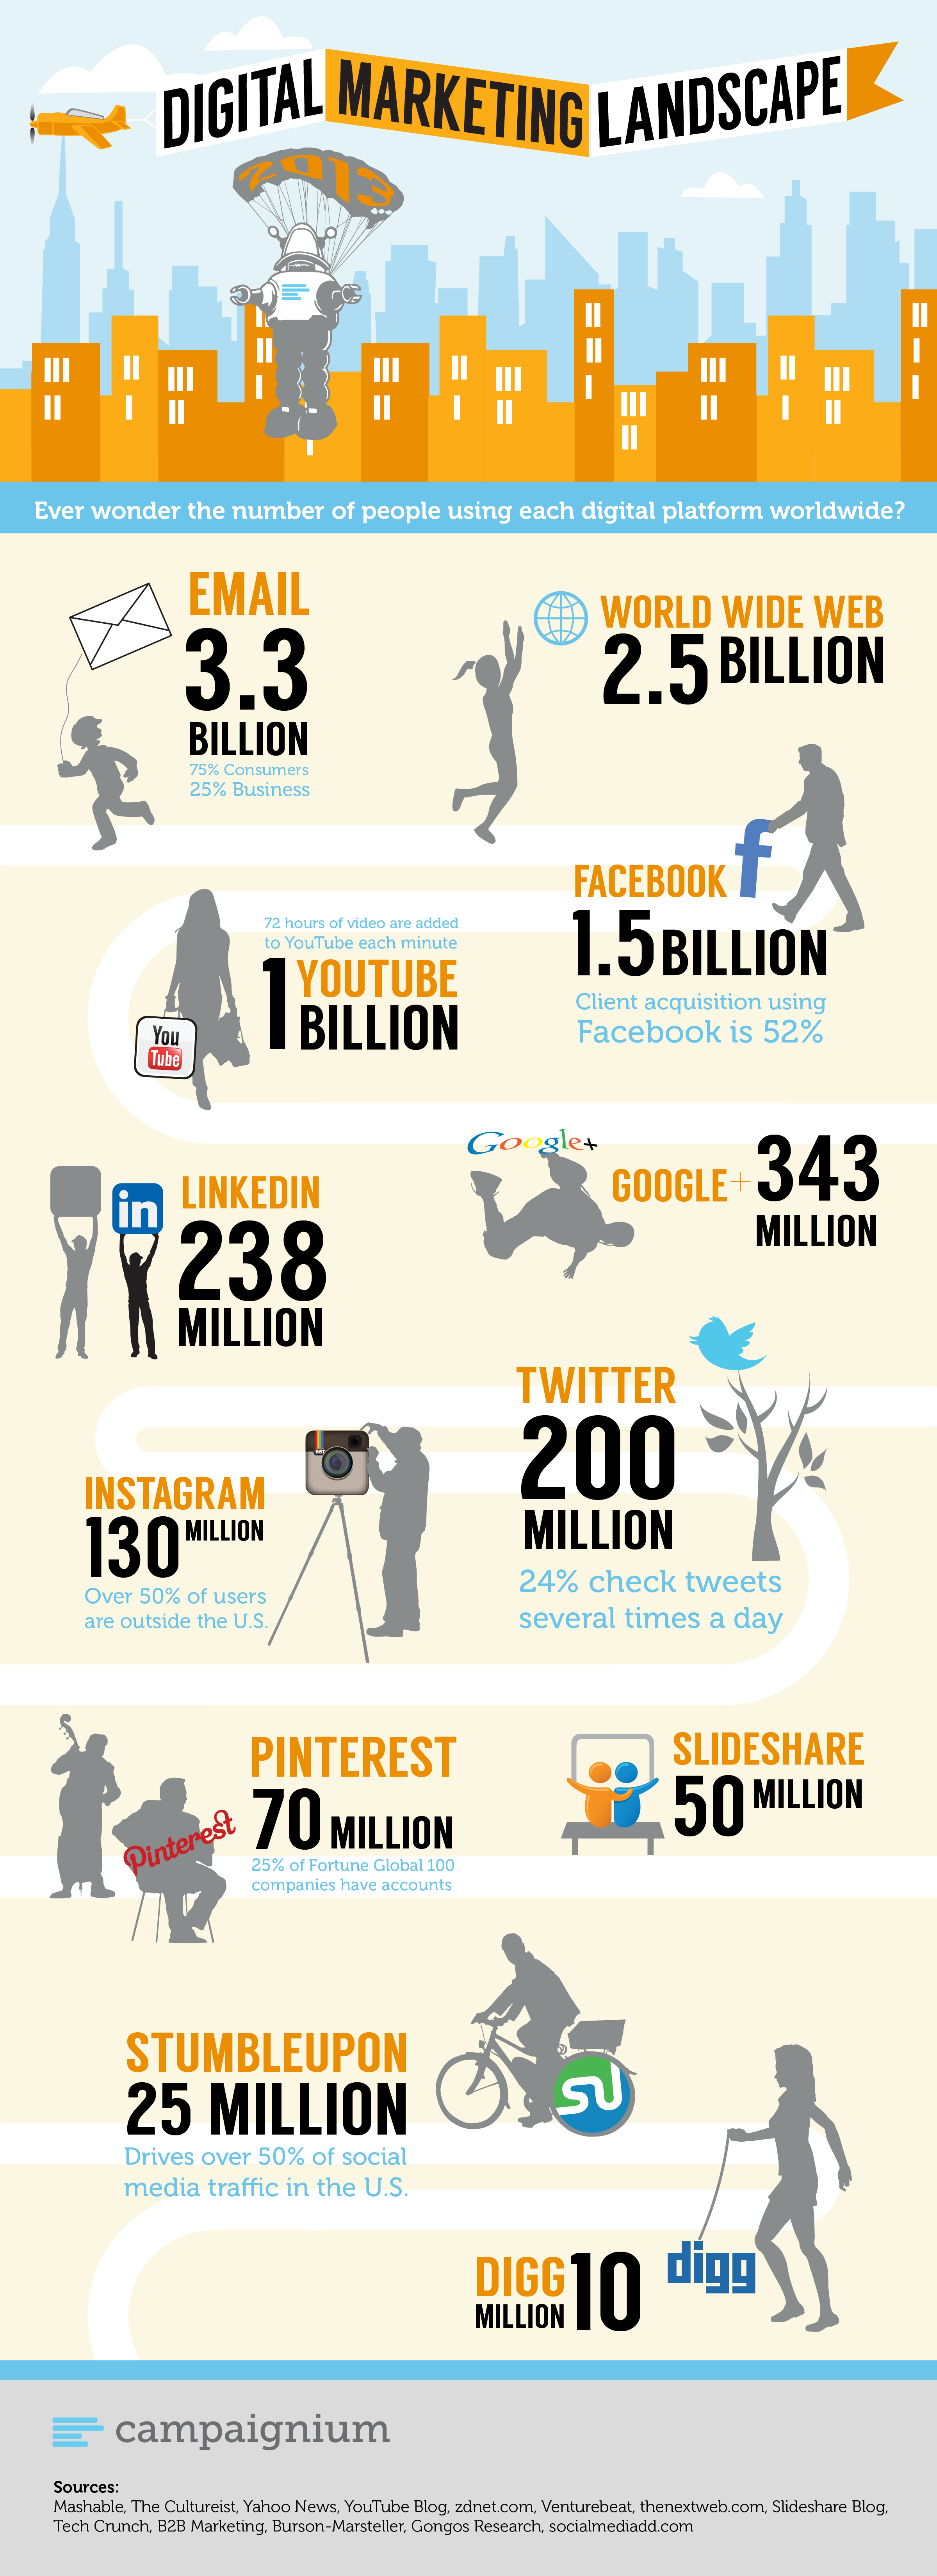 Digital Marketing Landscape Infographic Visualistan